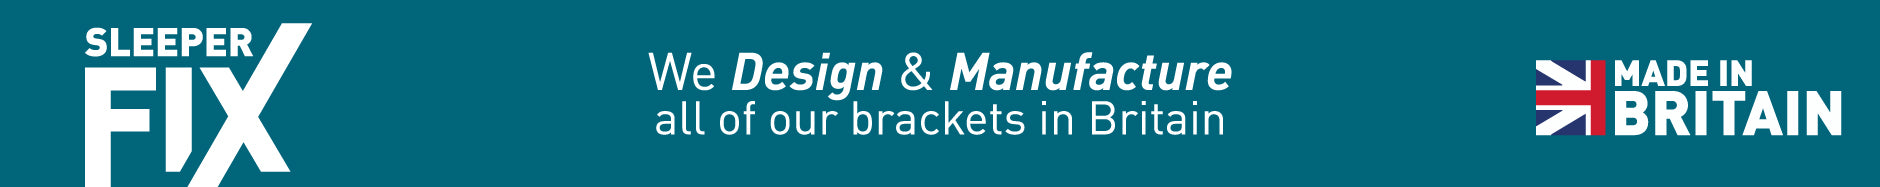 All our Brackets are designed and manufactured in England